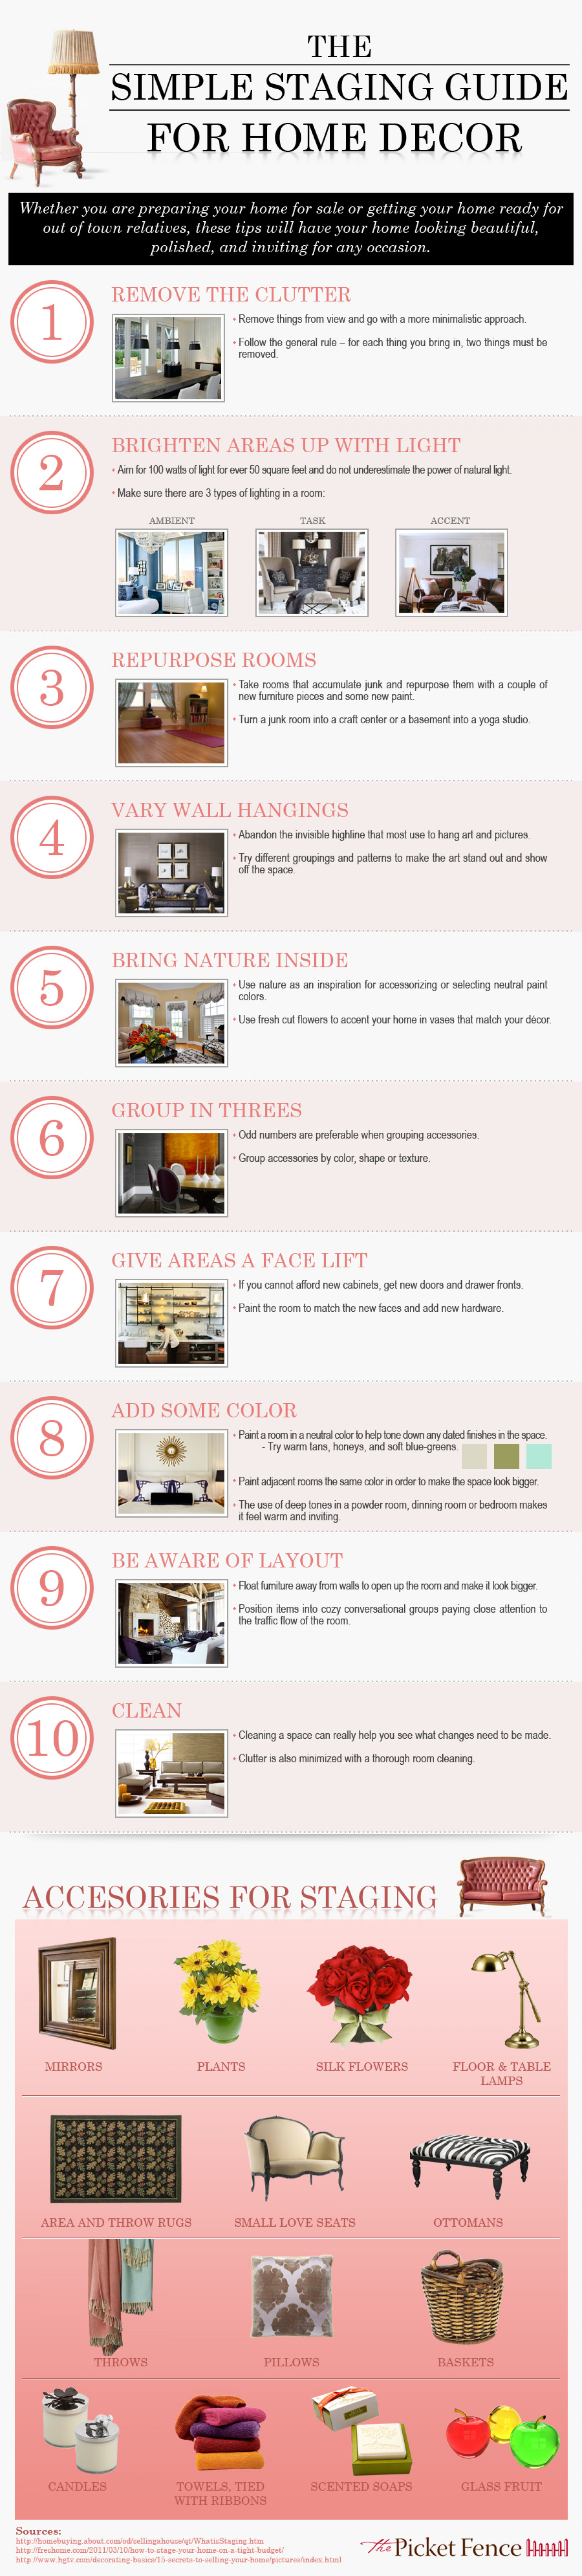 The Simple Staging Guide for Home Decor Infographic